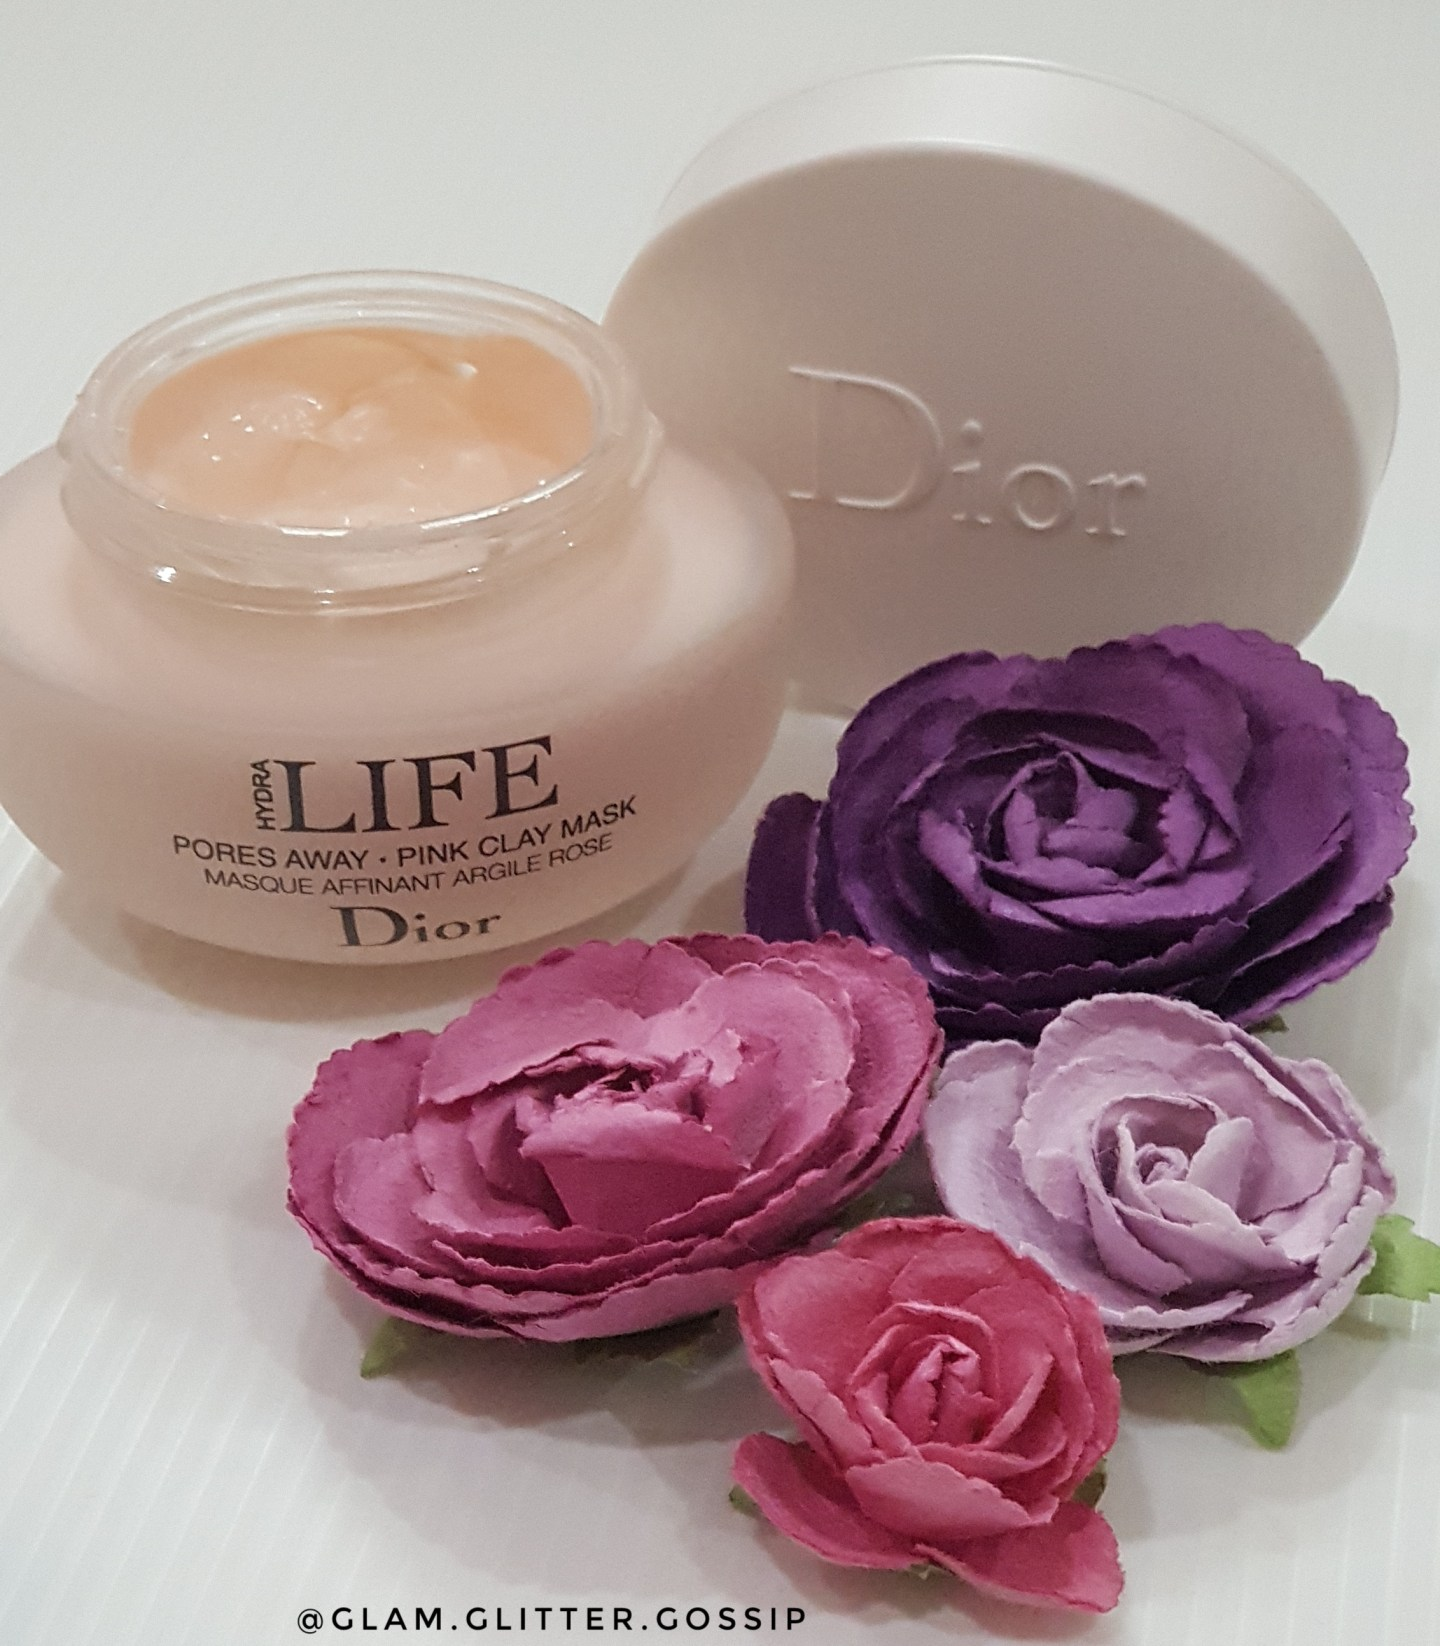 Dior Hydra Life Pores Away Pink Clay Mask Review